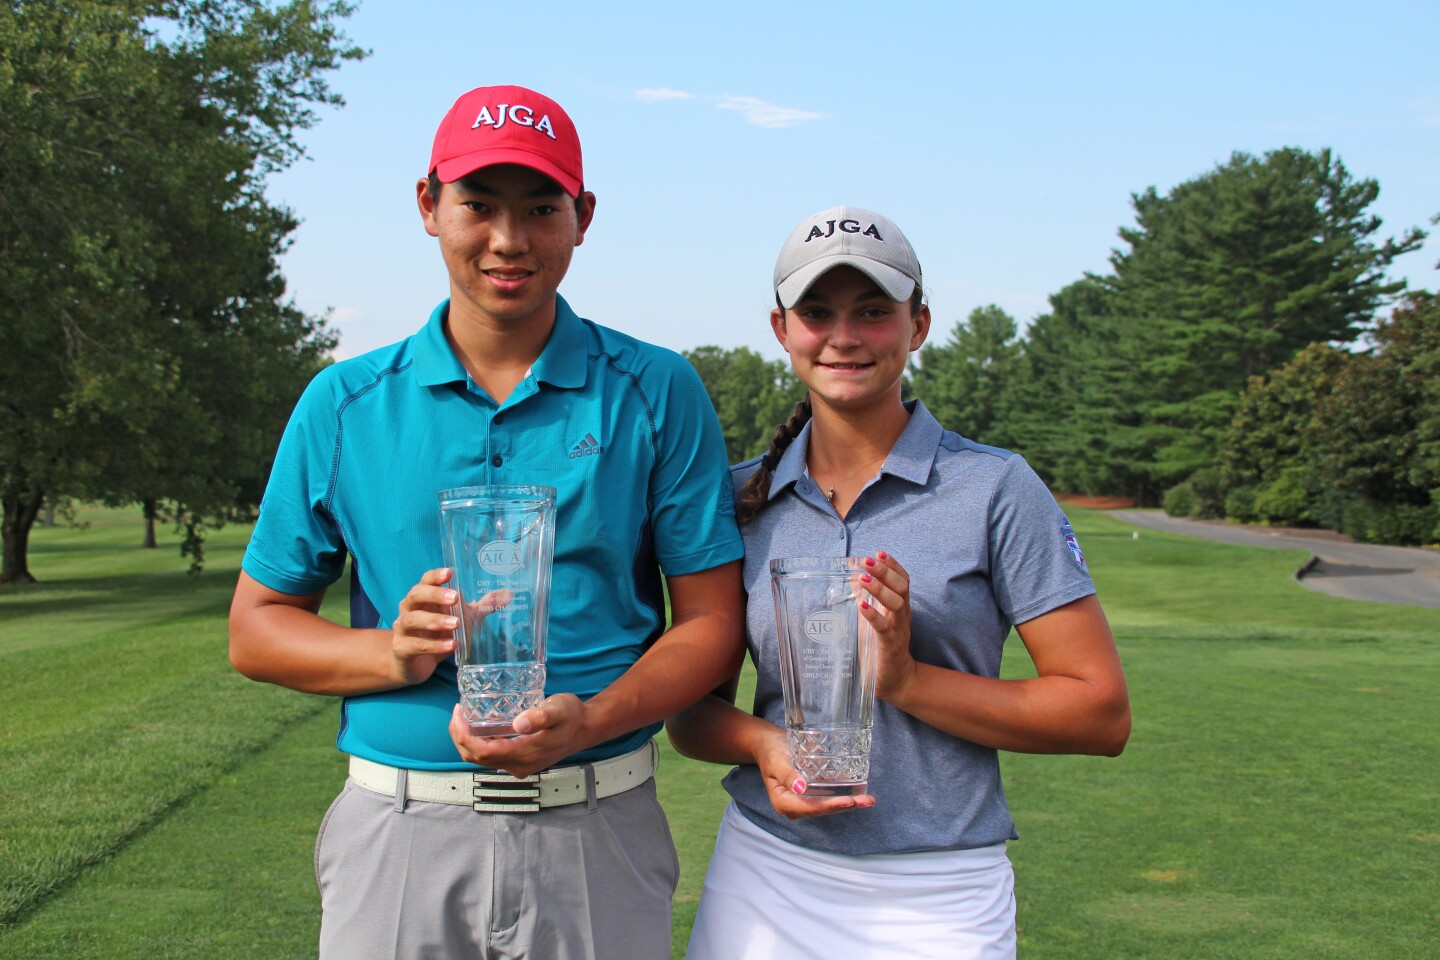 Tony Chen and Haley Quickel, Champs-2019-UHY - The First Tee of Greater Baltimore Junior Championship.jpg